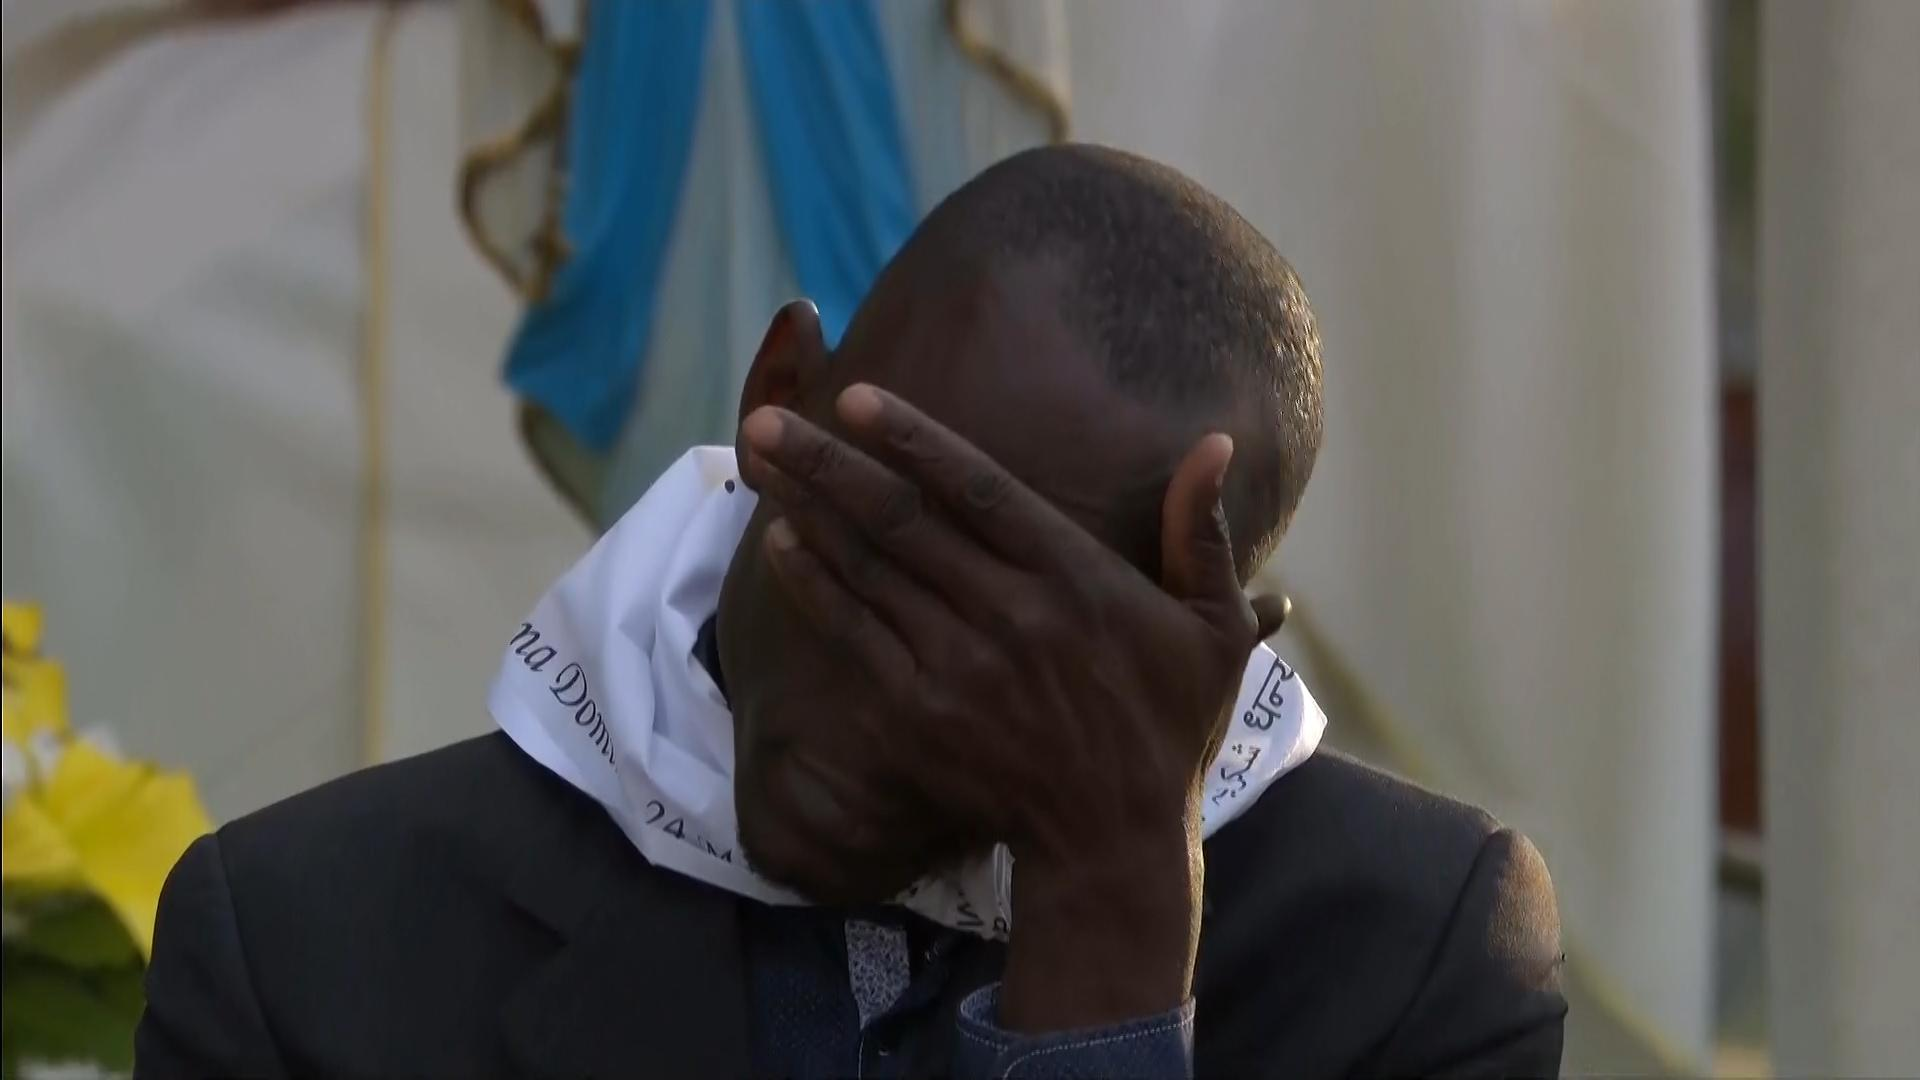 One of the refugees is overcome with emotion during the Pope's Holy Thursday Mass